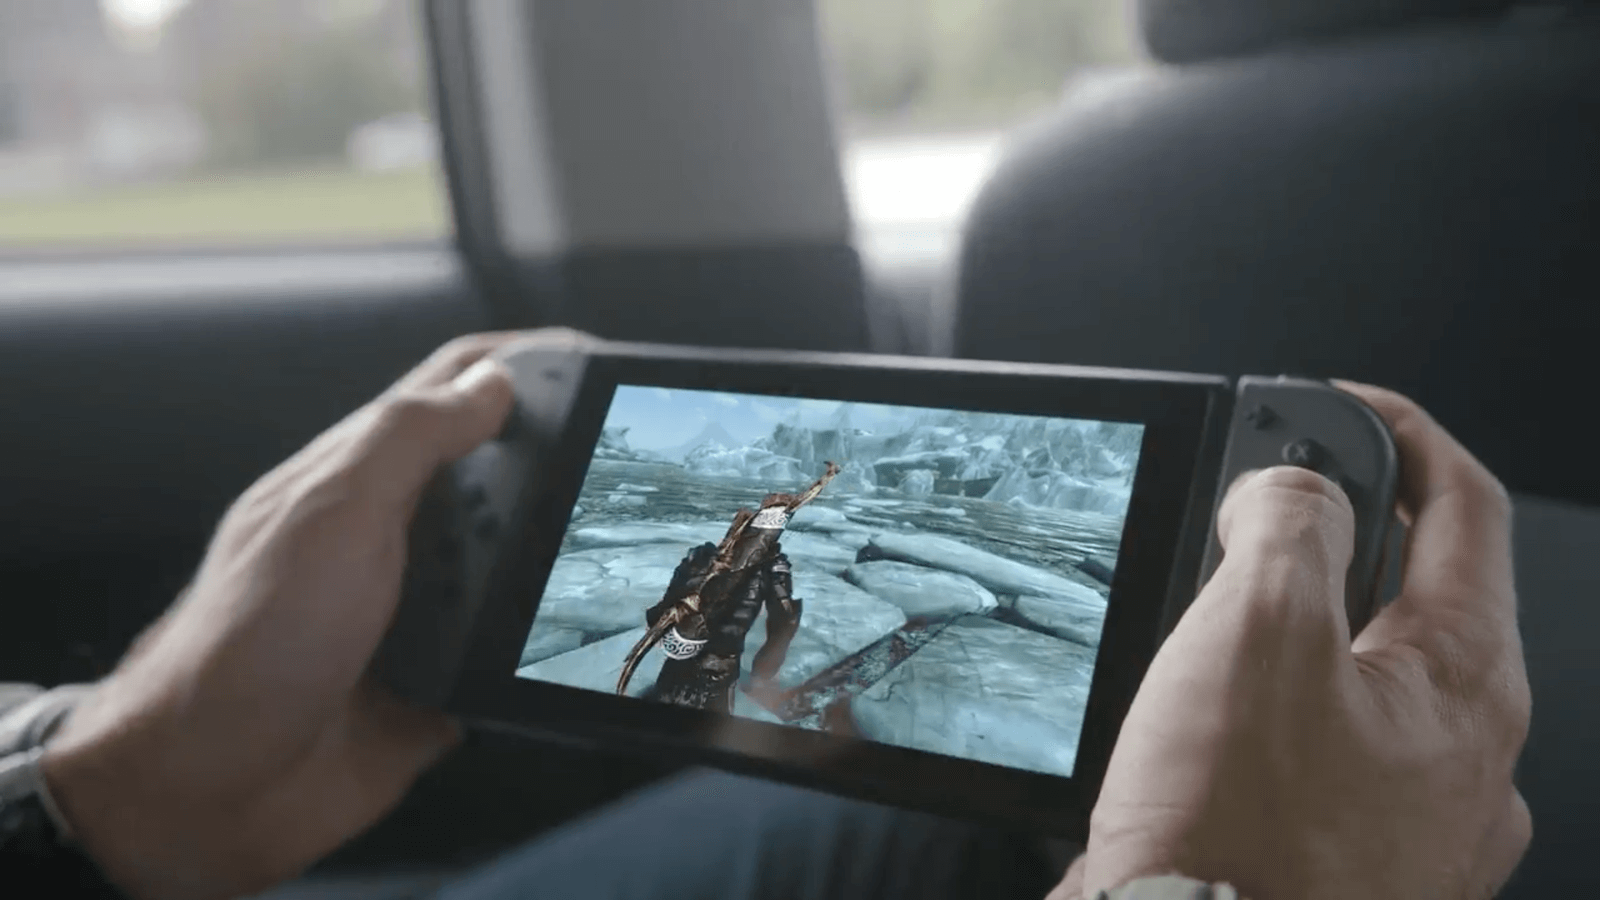 İki Assassin Creed Sürümü Nintendo Switch'e Eklendi!